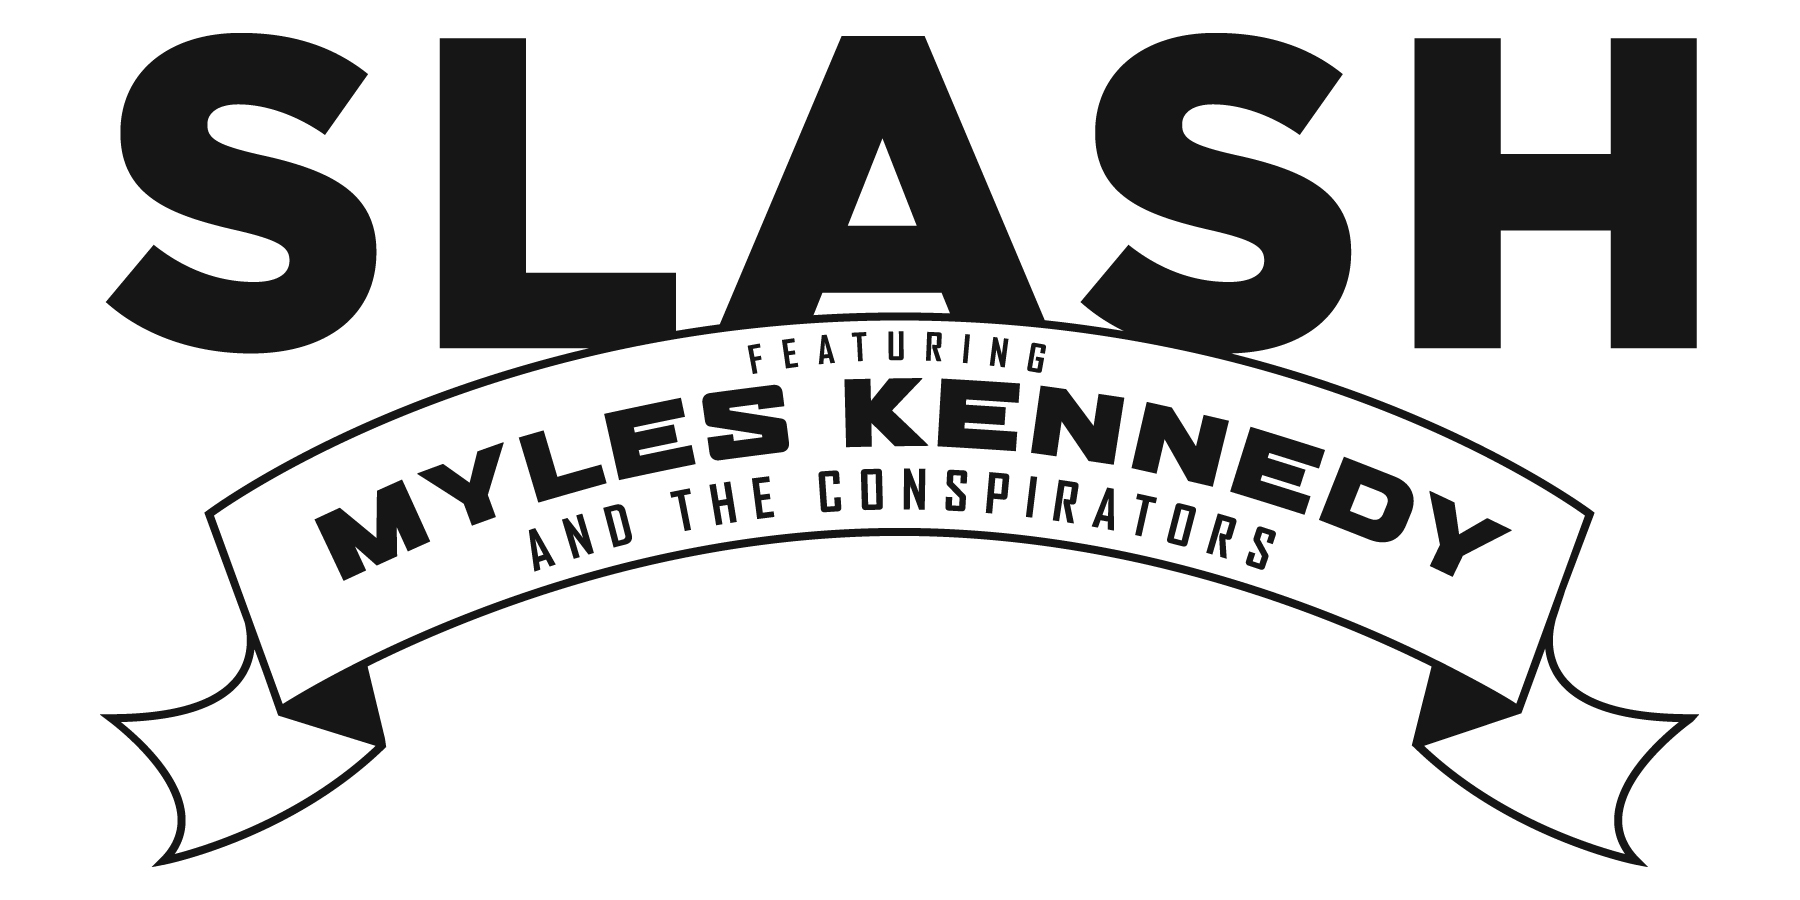 Slash Featuring The Conspirators - Live At The Roxy 25.9.14